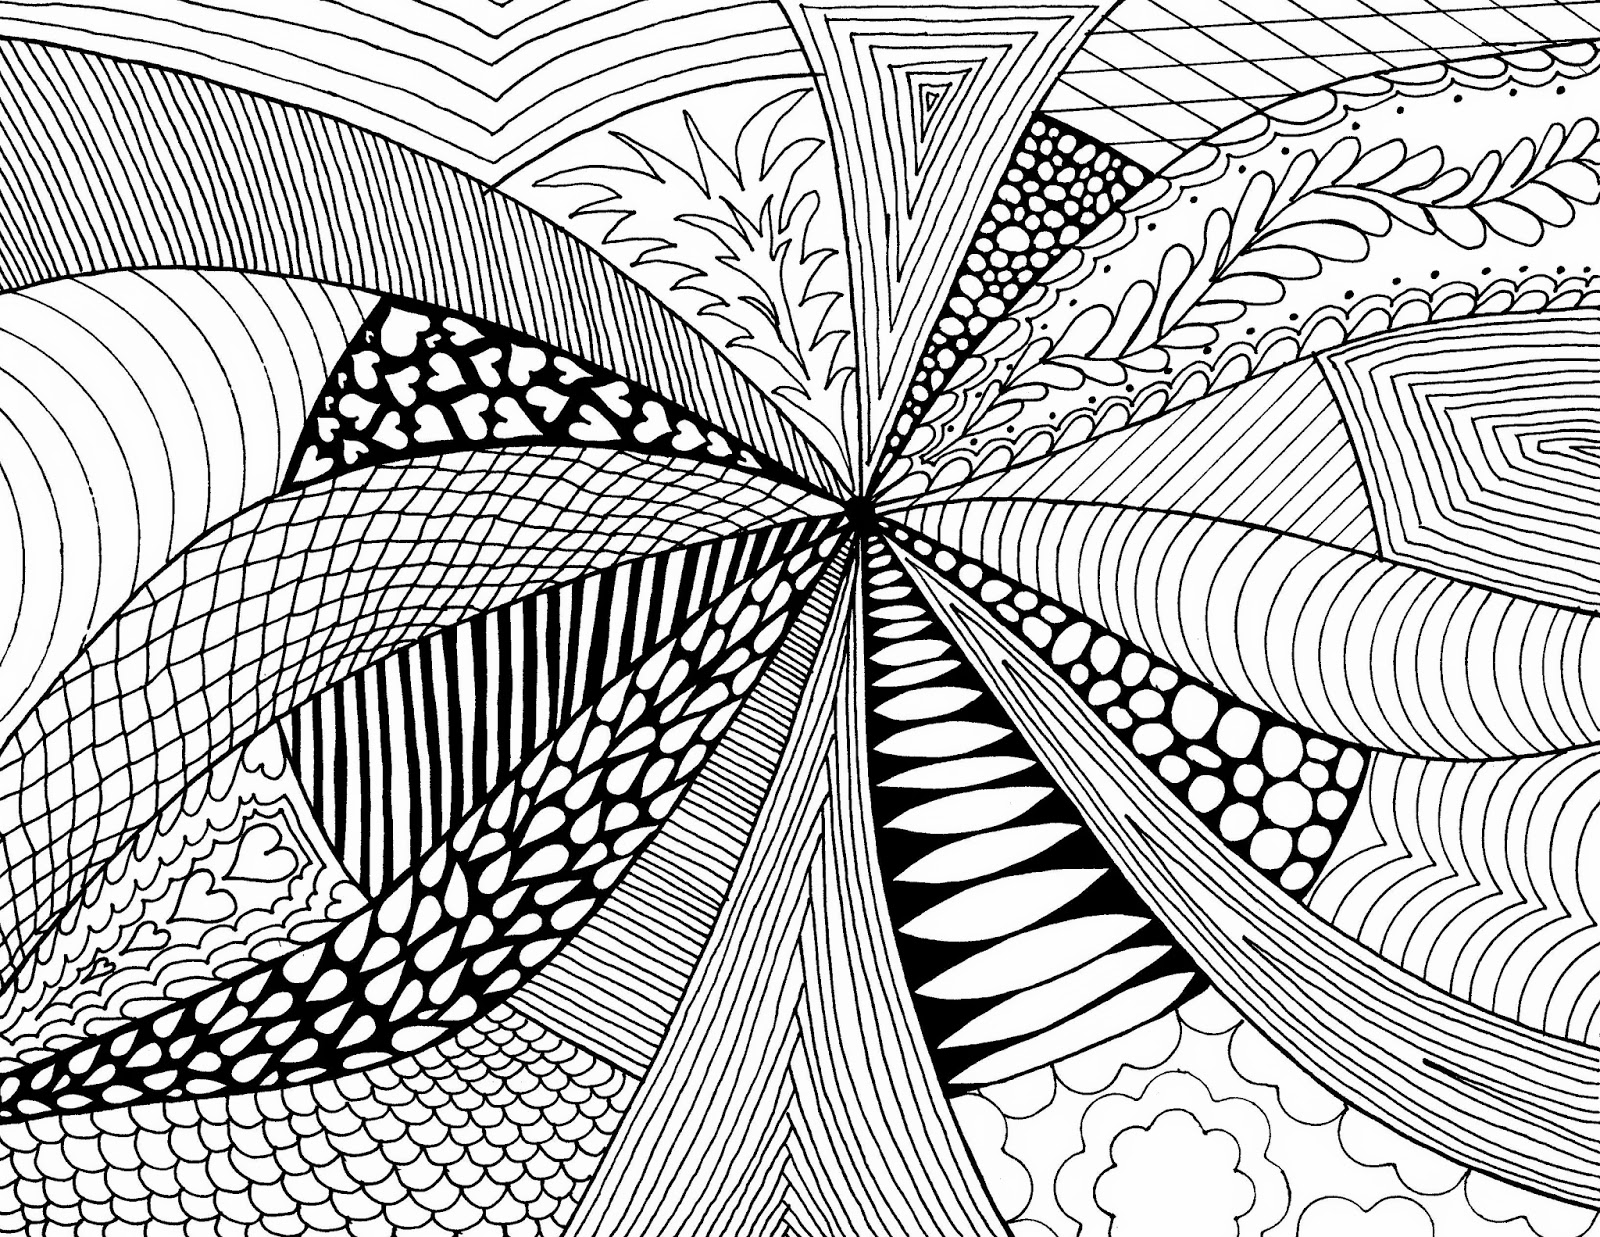 Using Lines In Drawing : Circle pattern drawing at getdrawings free for